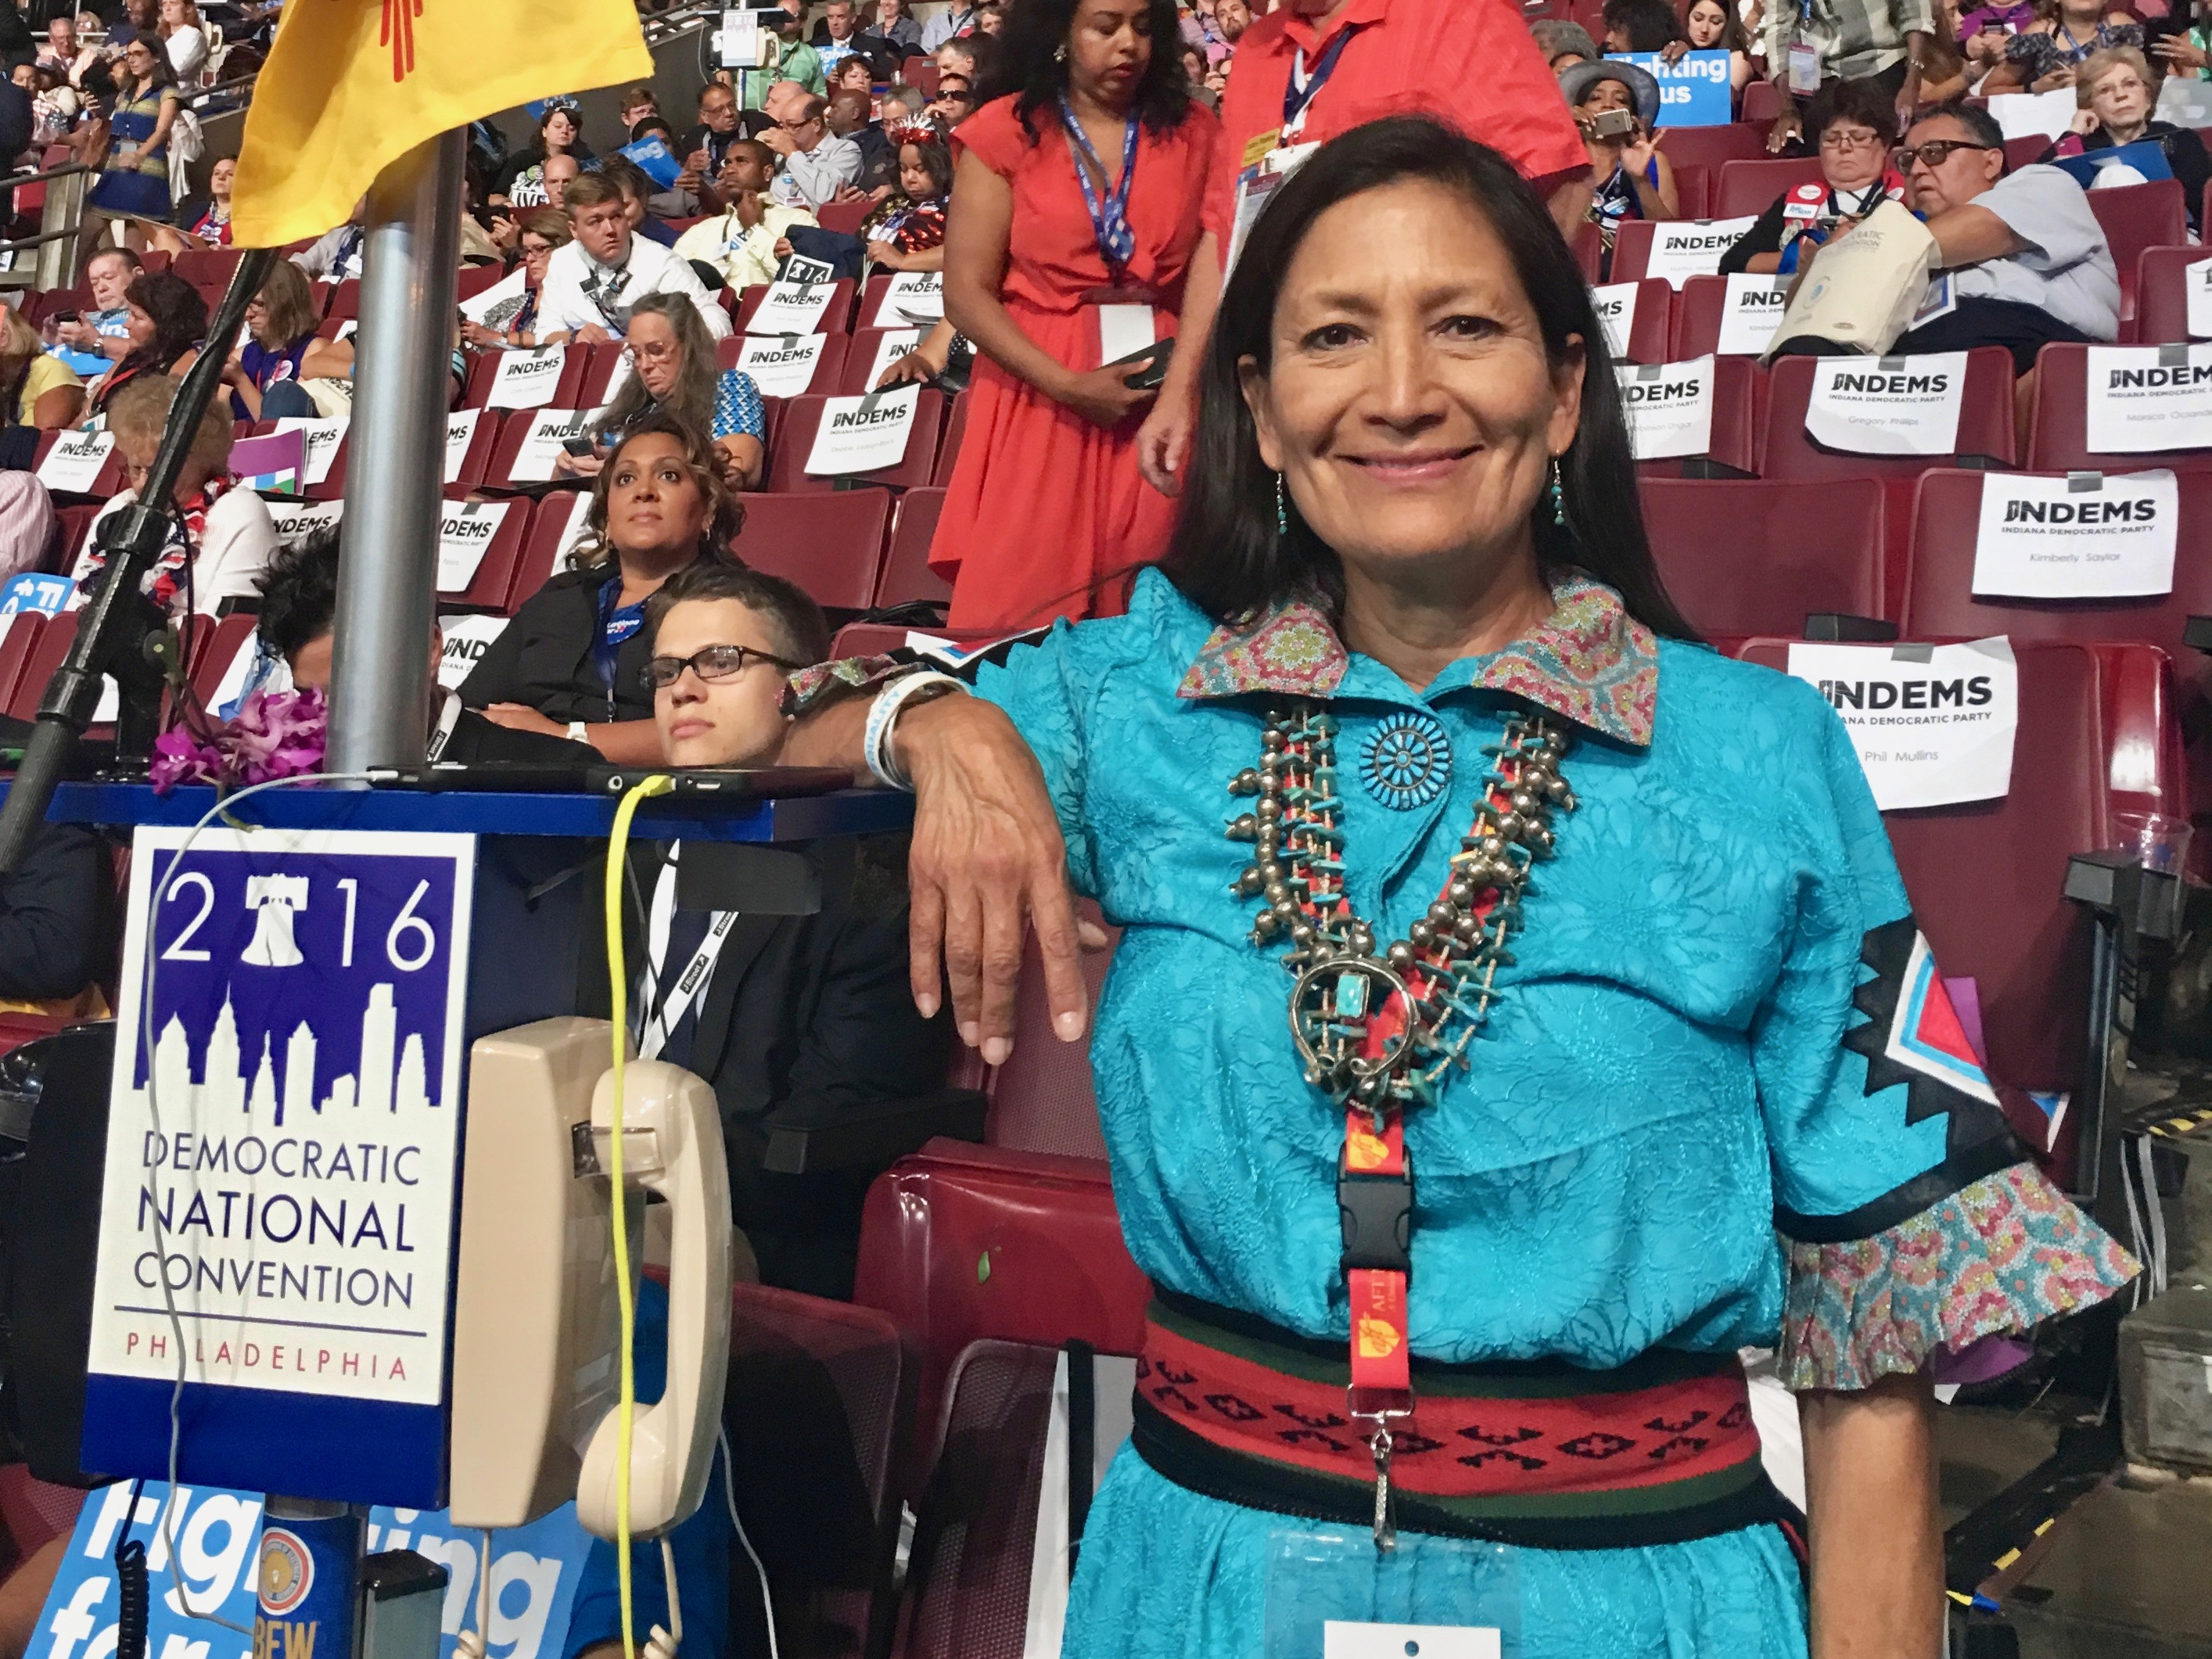 Mark Trahant: It's time for a Native woman to serve in U.S. Congress